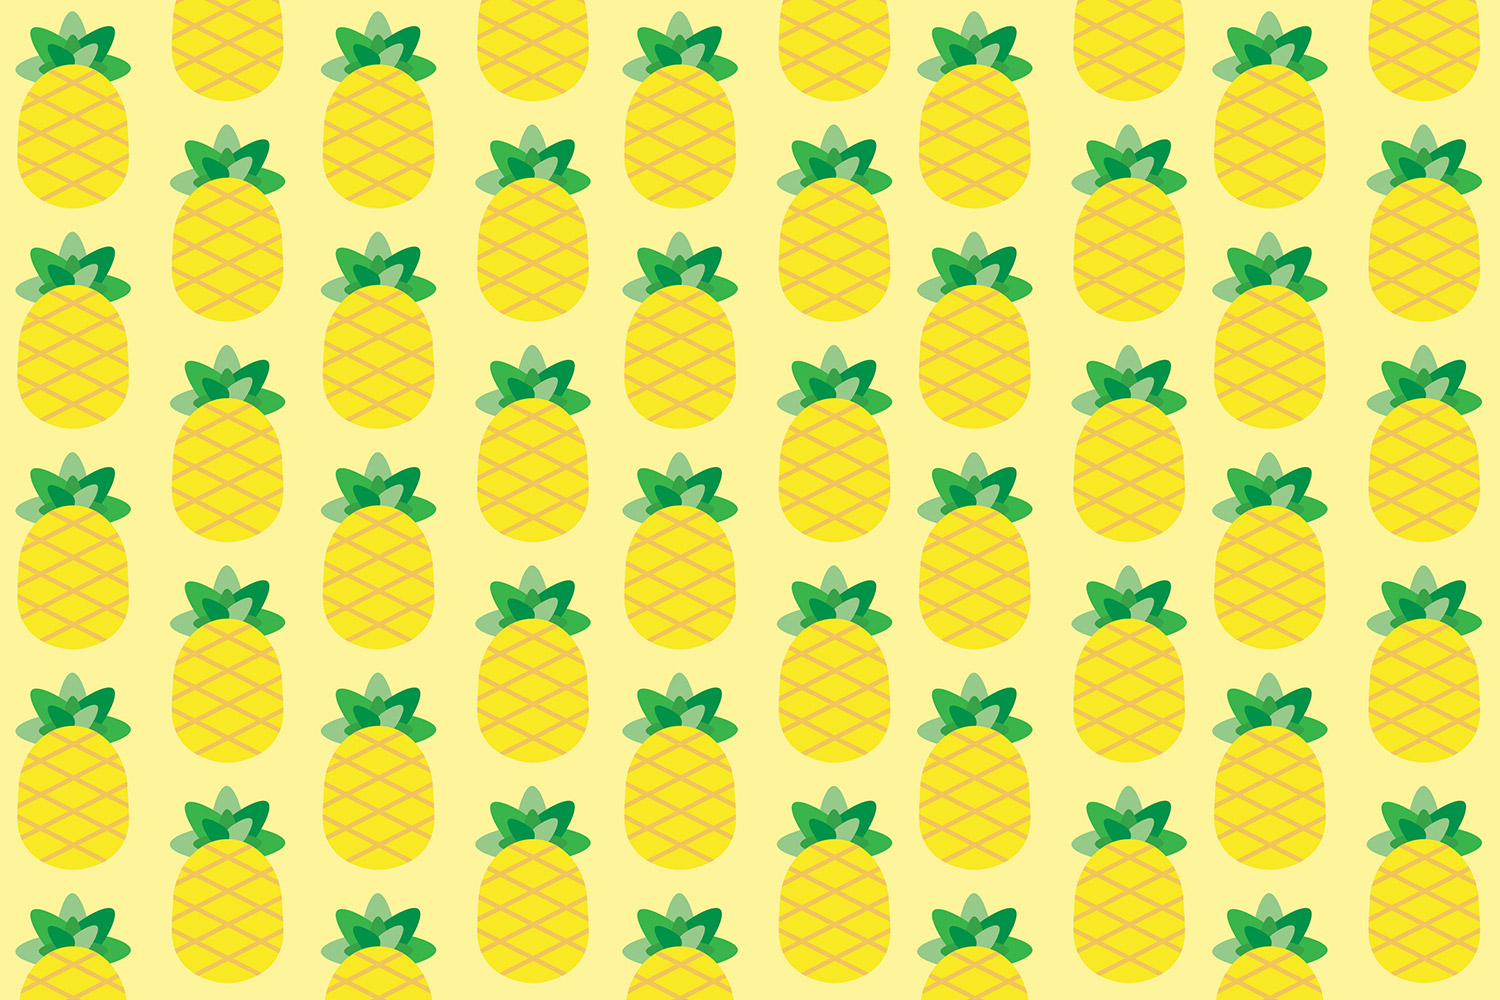 carta-da-regalo-pattern-ananas-giallo-pineapple-supercolors